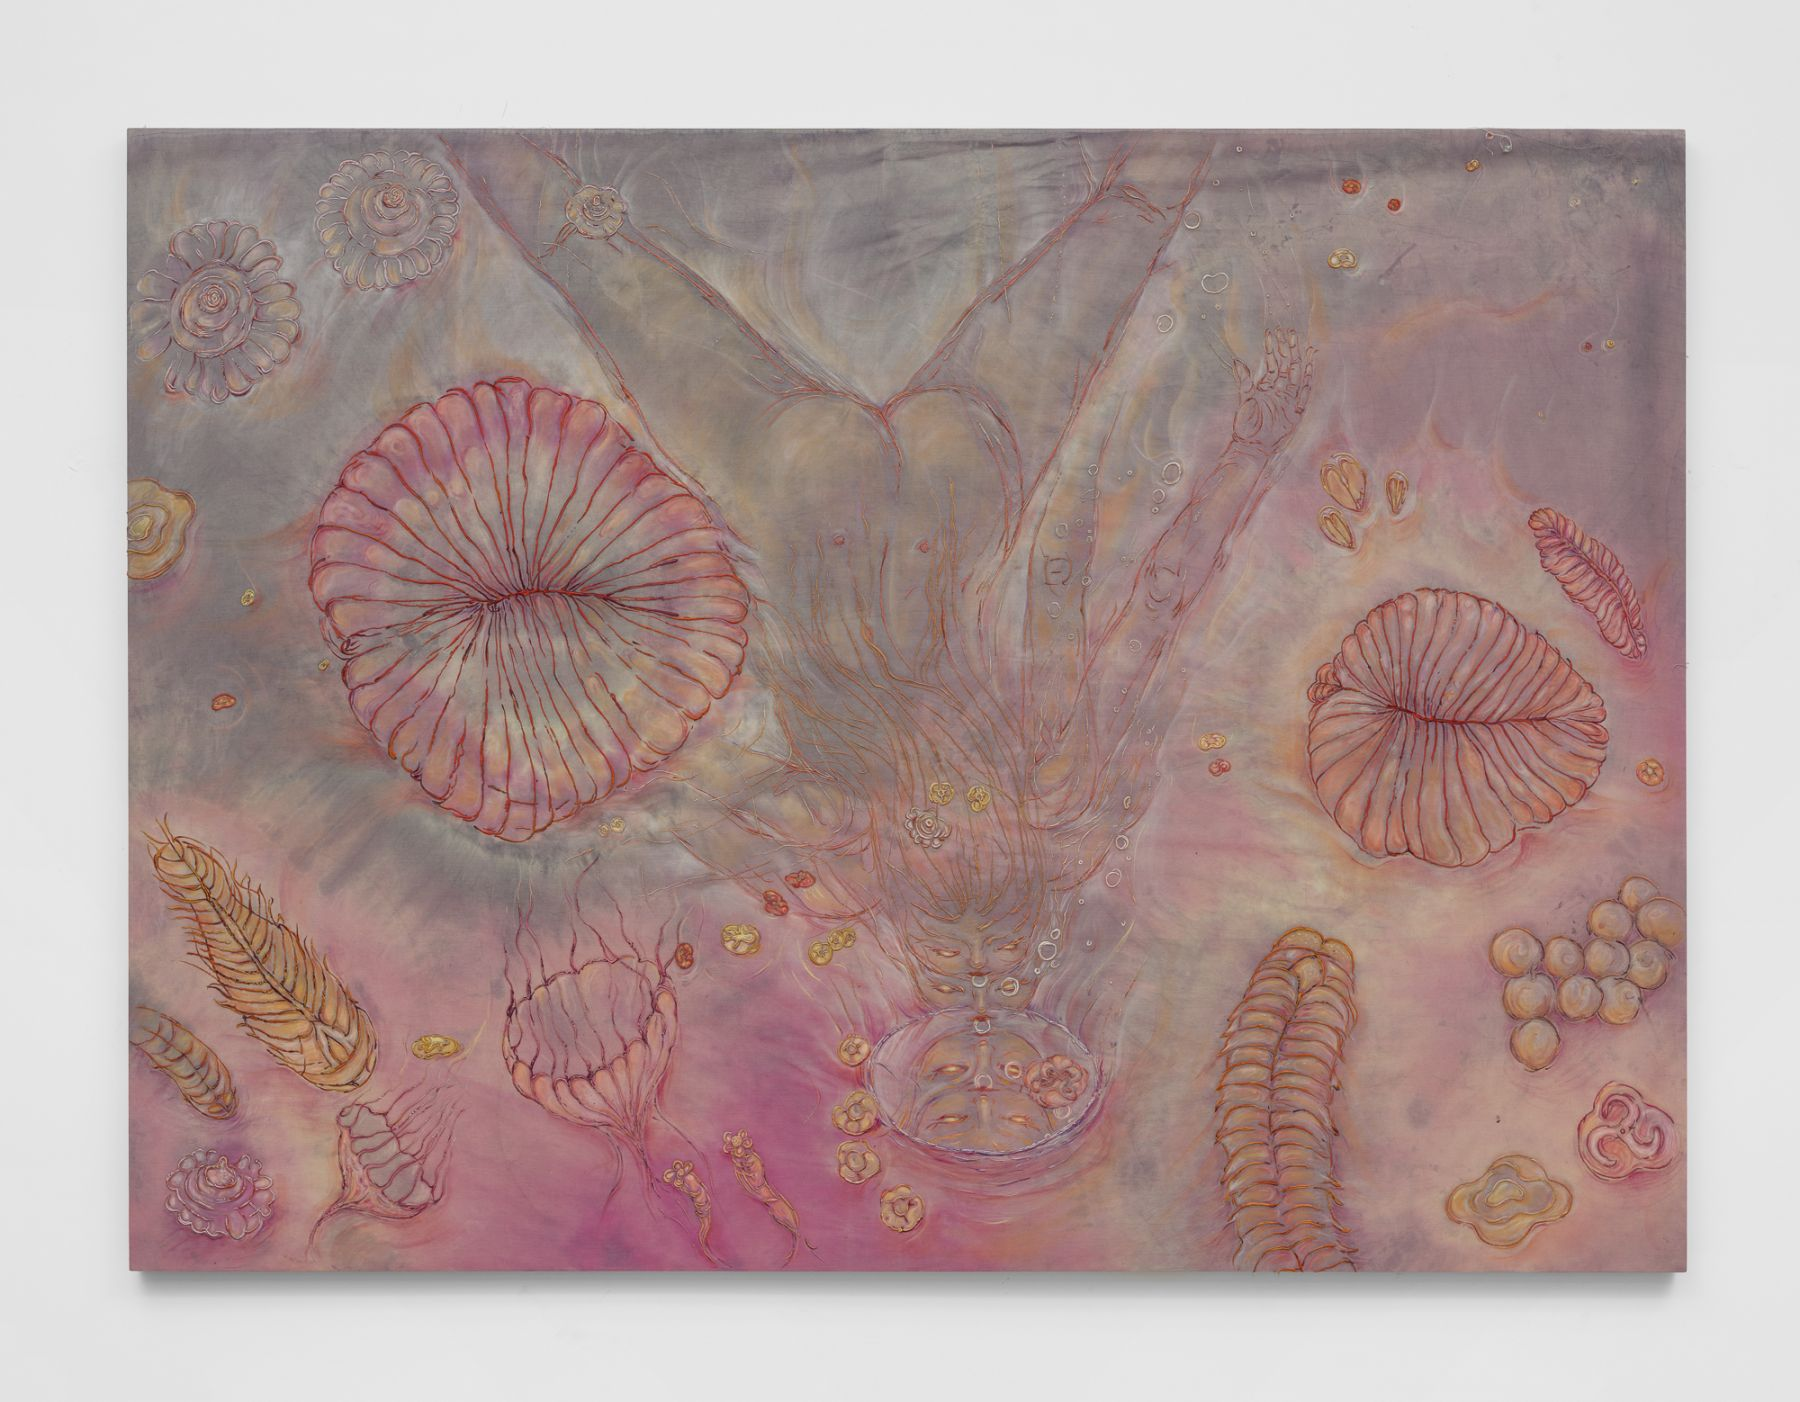 In a pink haze of submarine wonder, jellyfish, crustacean, and underwater etchings float to the foreground, behind which a naked individual swims downward to gaze into its own reflection in a mirror.